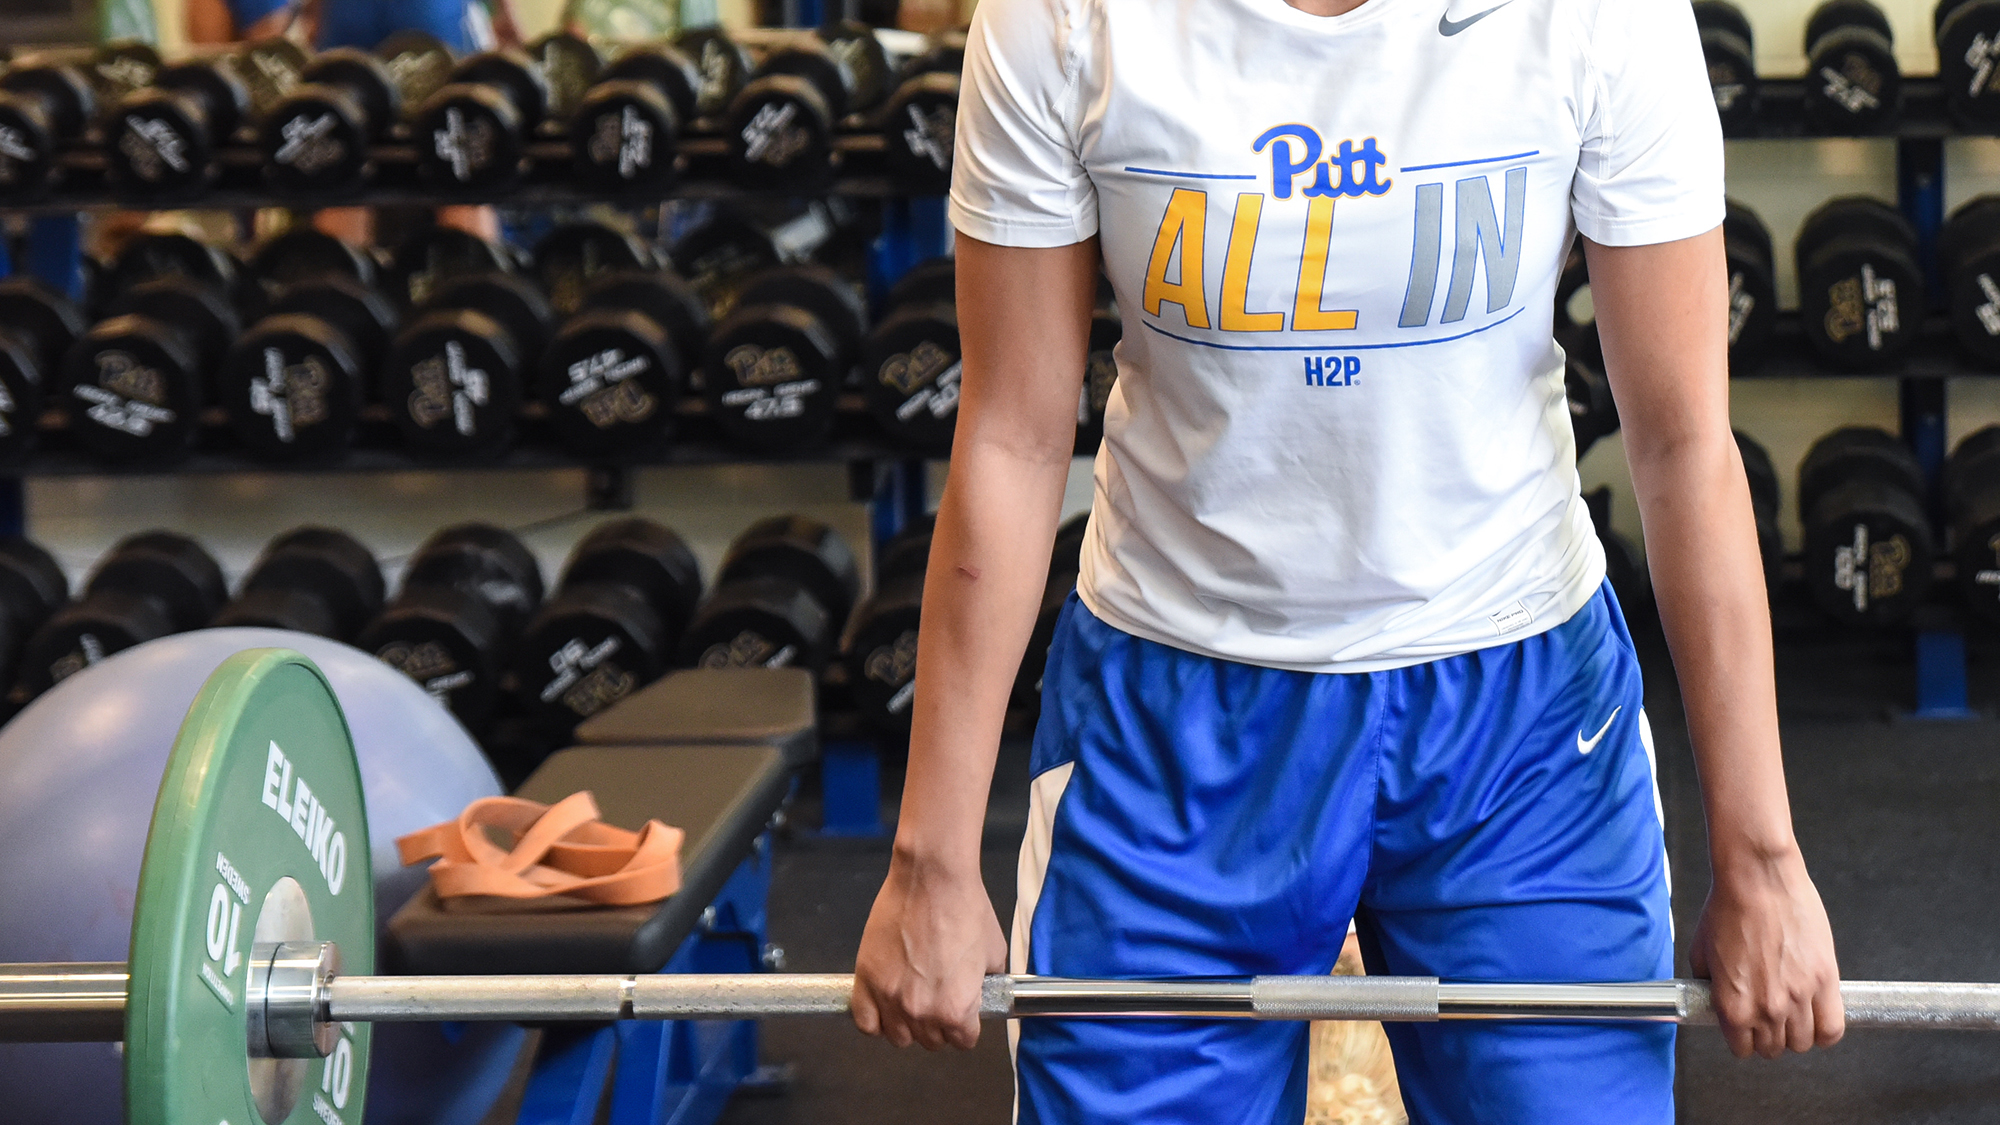 Vail Named Strength & Conditioning Coach for Pitt Women's Basketball